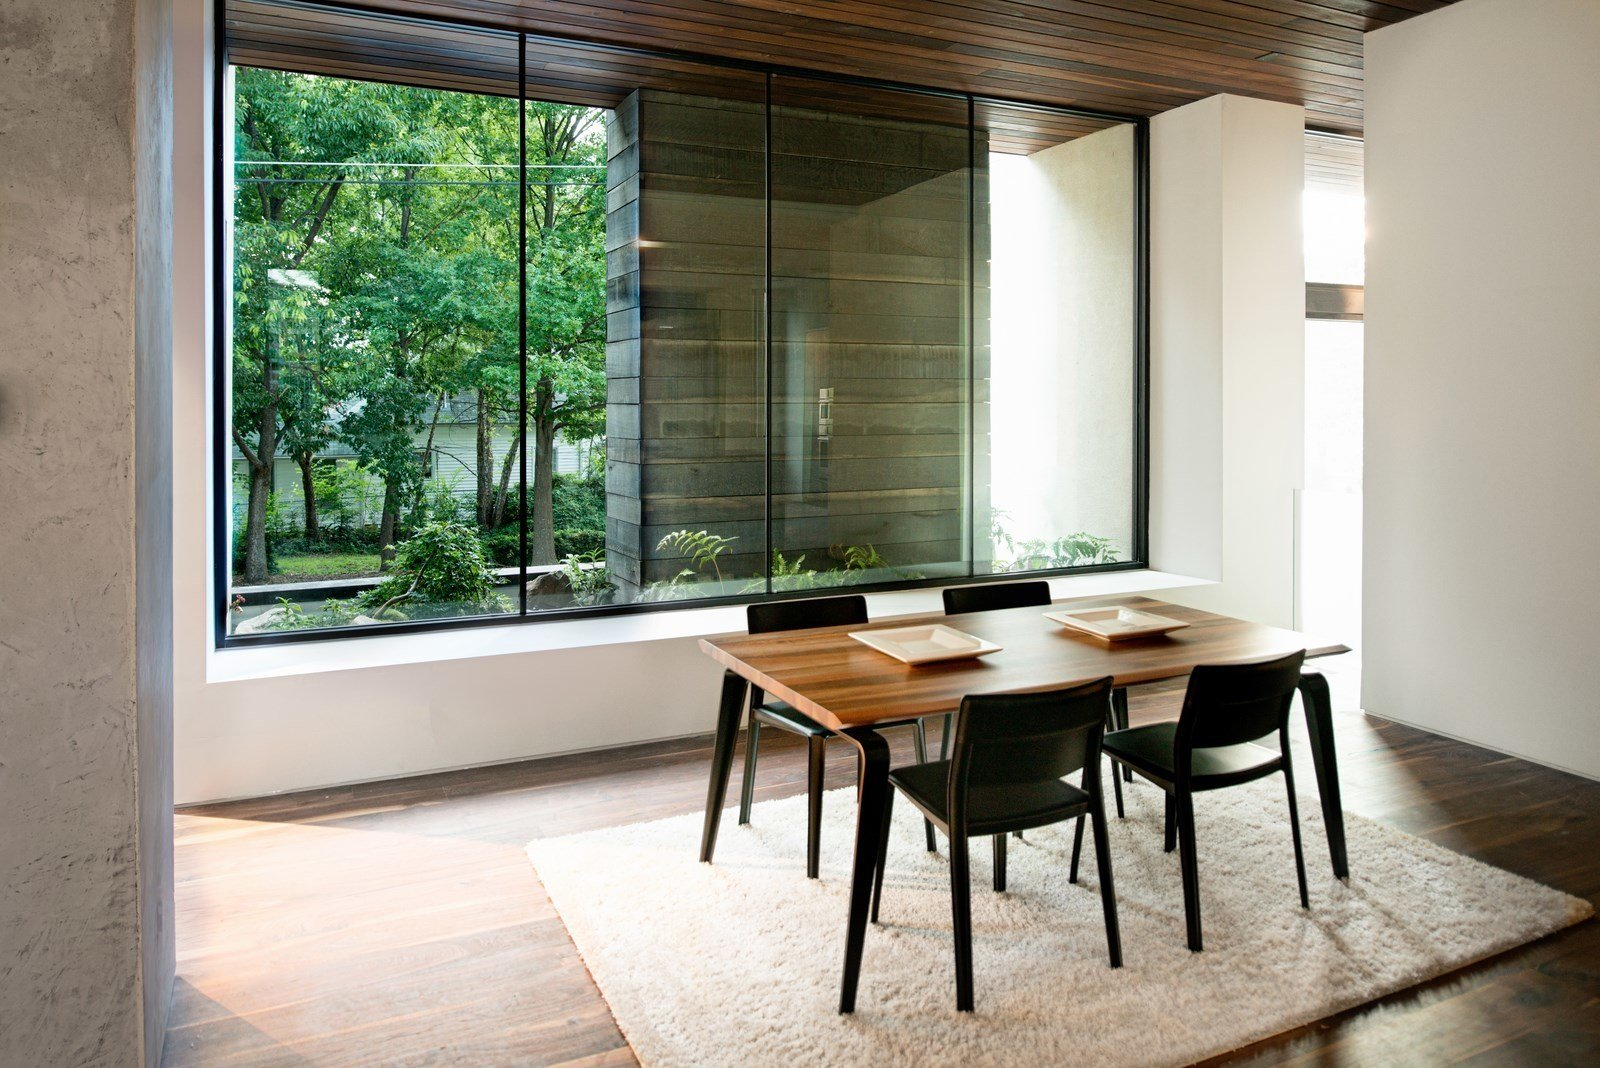 Tagged: Dining Room, Medium Hardwood Floor, Table, and Chair.  Alaska House by West Architecture Studio